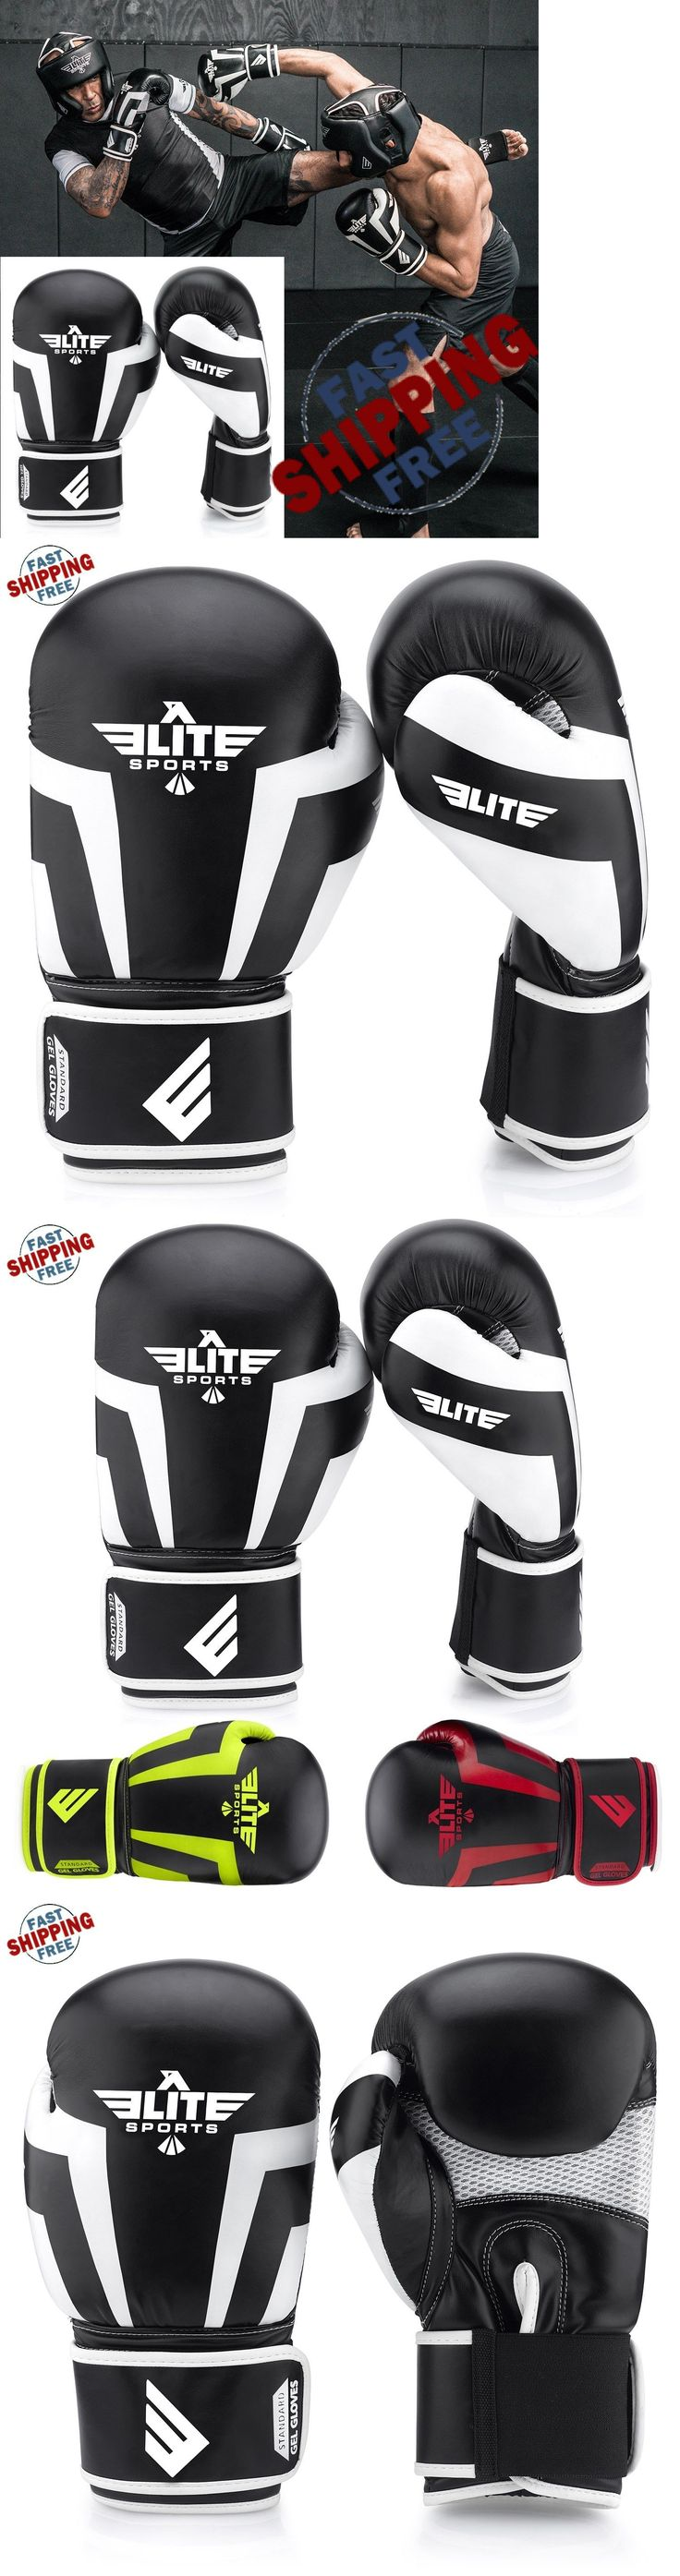 Gloves - Boxing 30102: Quality! Black Leather Boxing Gloves Training Fight Punch Mma Ufc Muay Thai 12Oz -> BUY IT NOW ONLY: $39.99 on eBay!